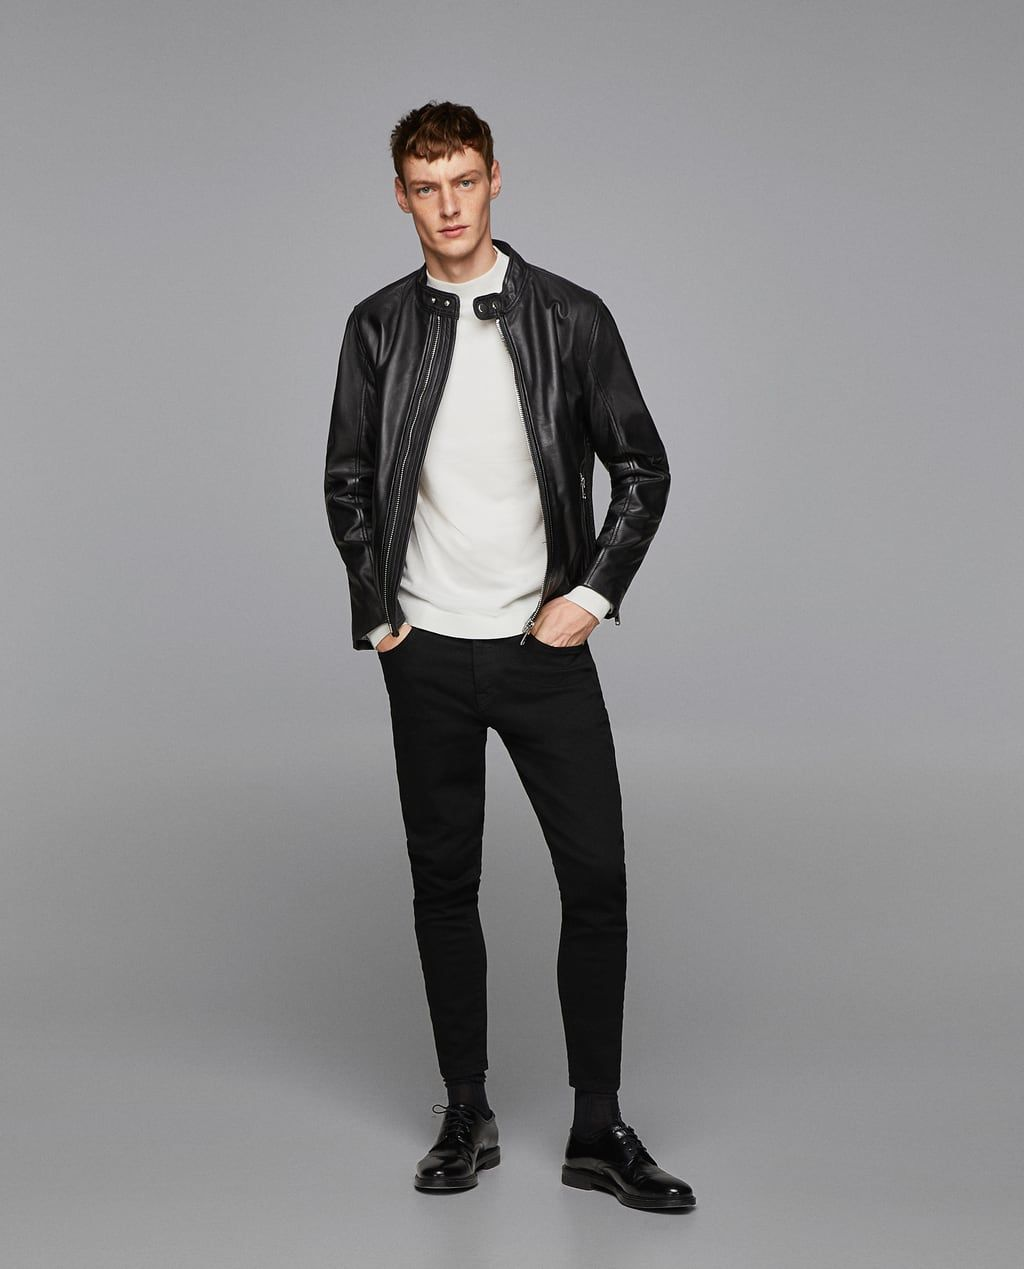 862636dbd48ec PLAIN JACKET WITH CONTRASTING DETAILS-View all-JACKETS-MAN